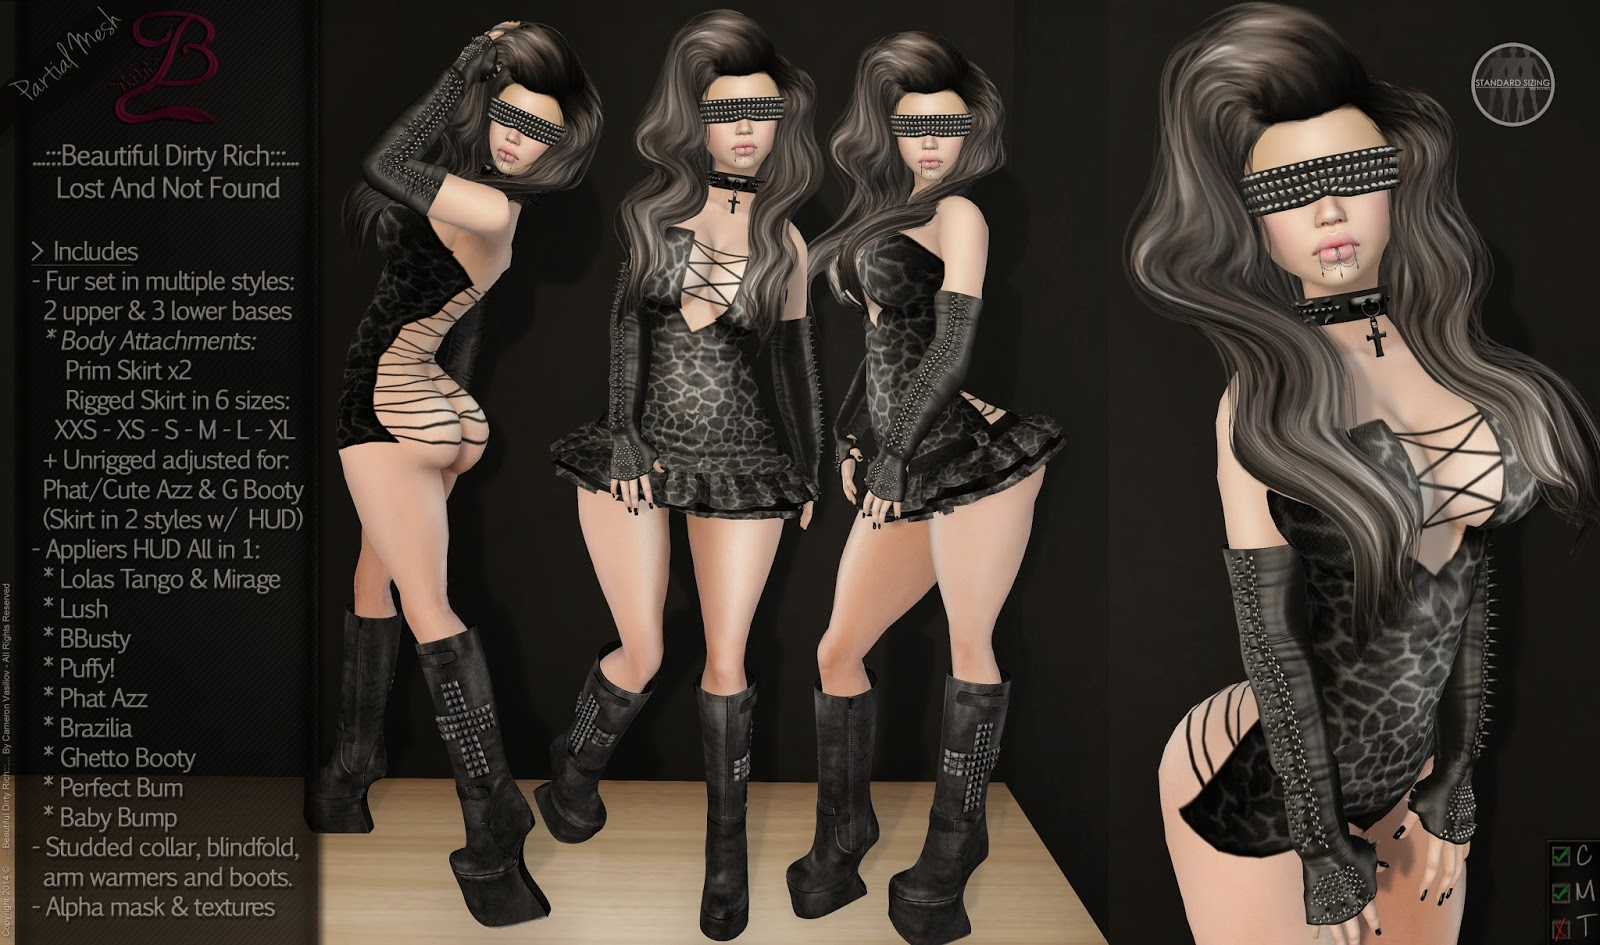 https://marketplace.secondlife.com/p/BDR-Lost-And-Not-Found-Complete-Outfit/5885290